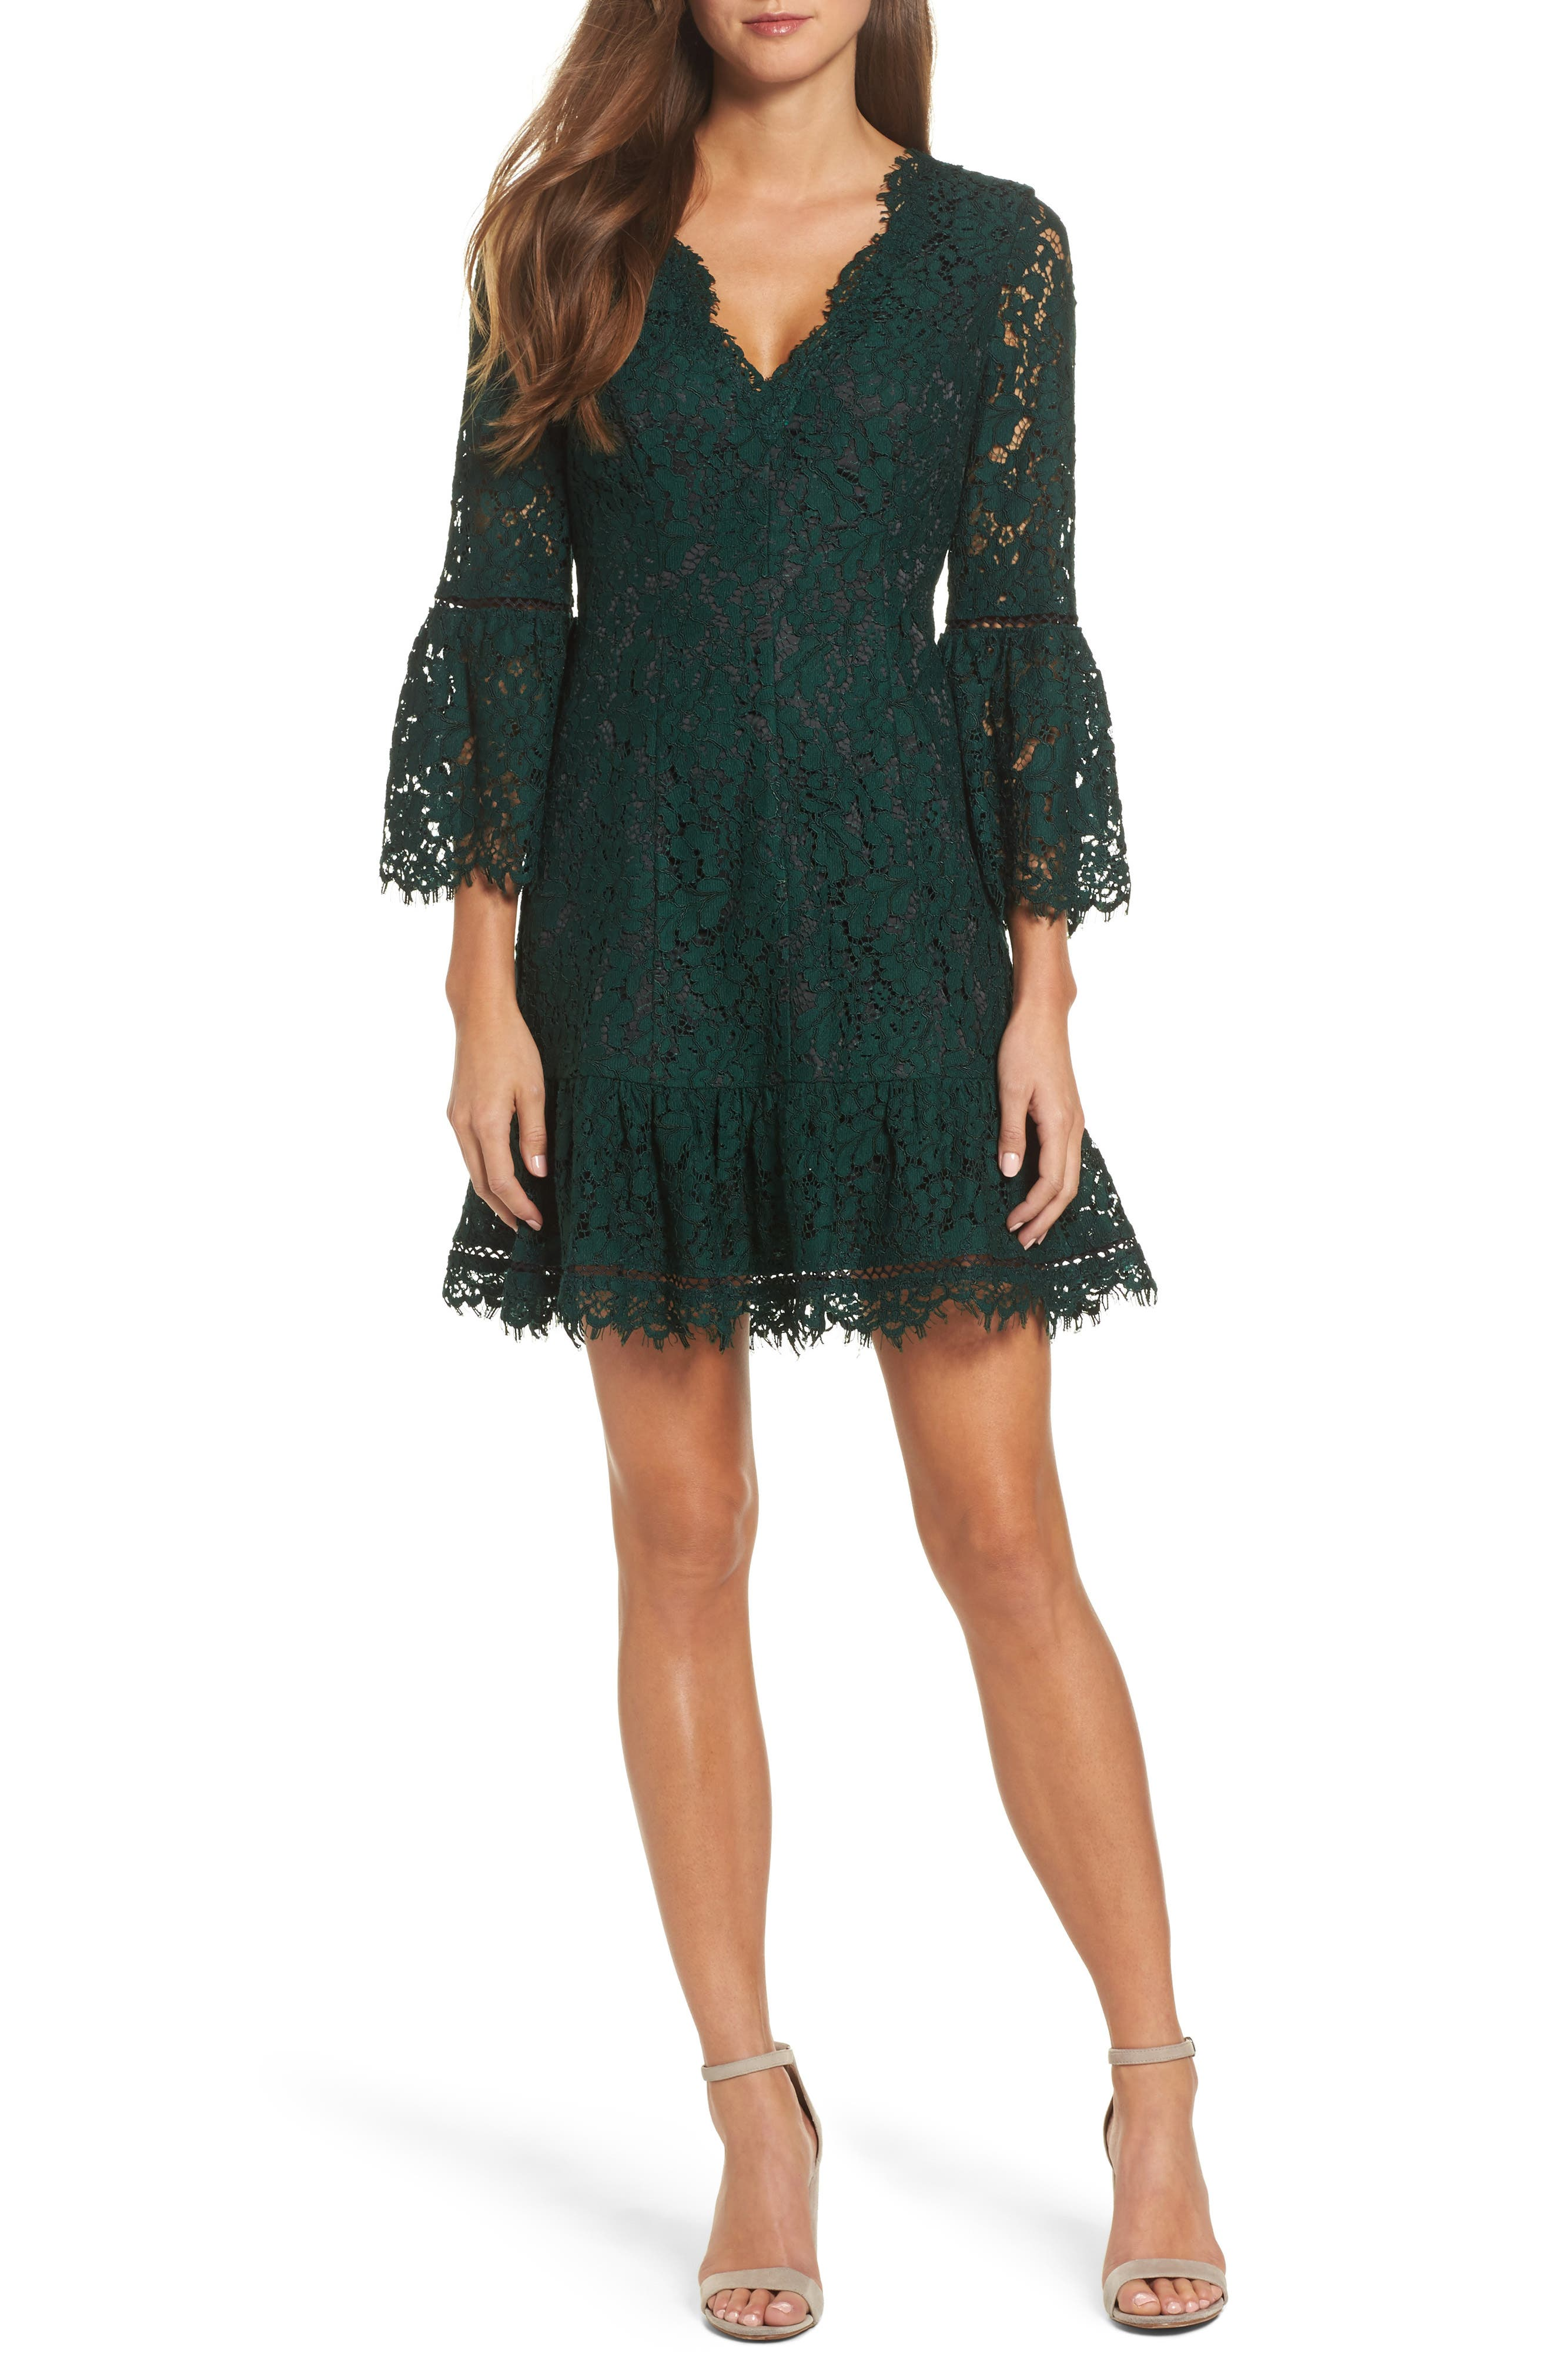 ELIZA J,                             Bell Sleeve Lace Cocktail Dress,                             Main thumbnail 1, color,                             GREEN/ BLACK